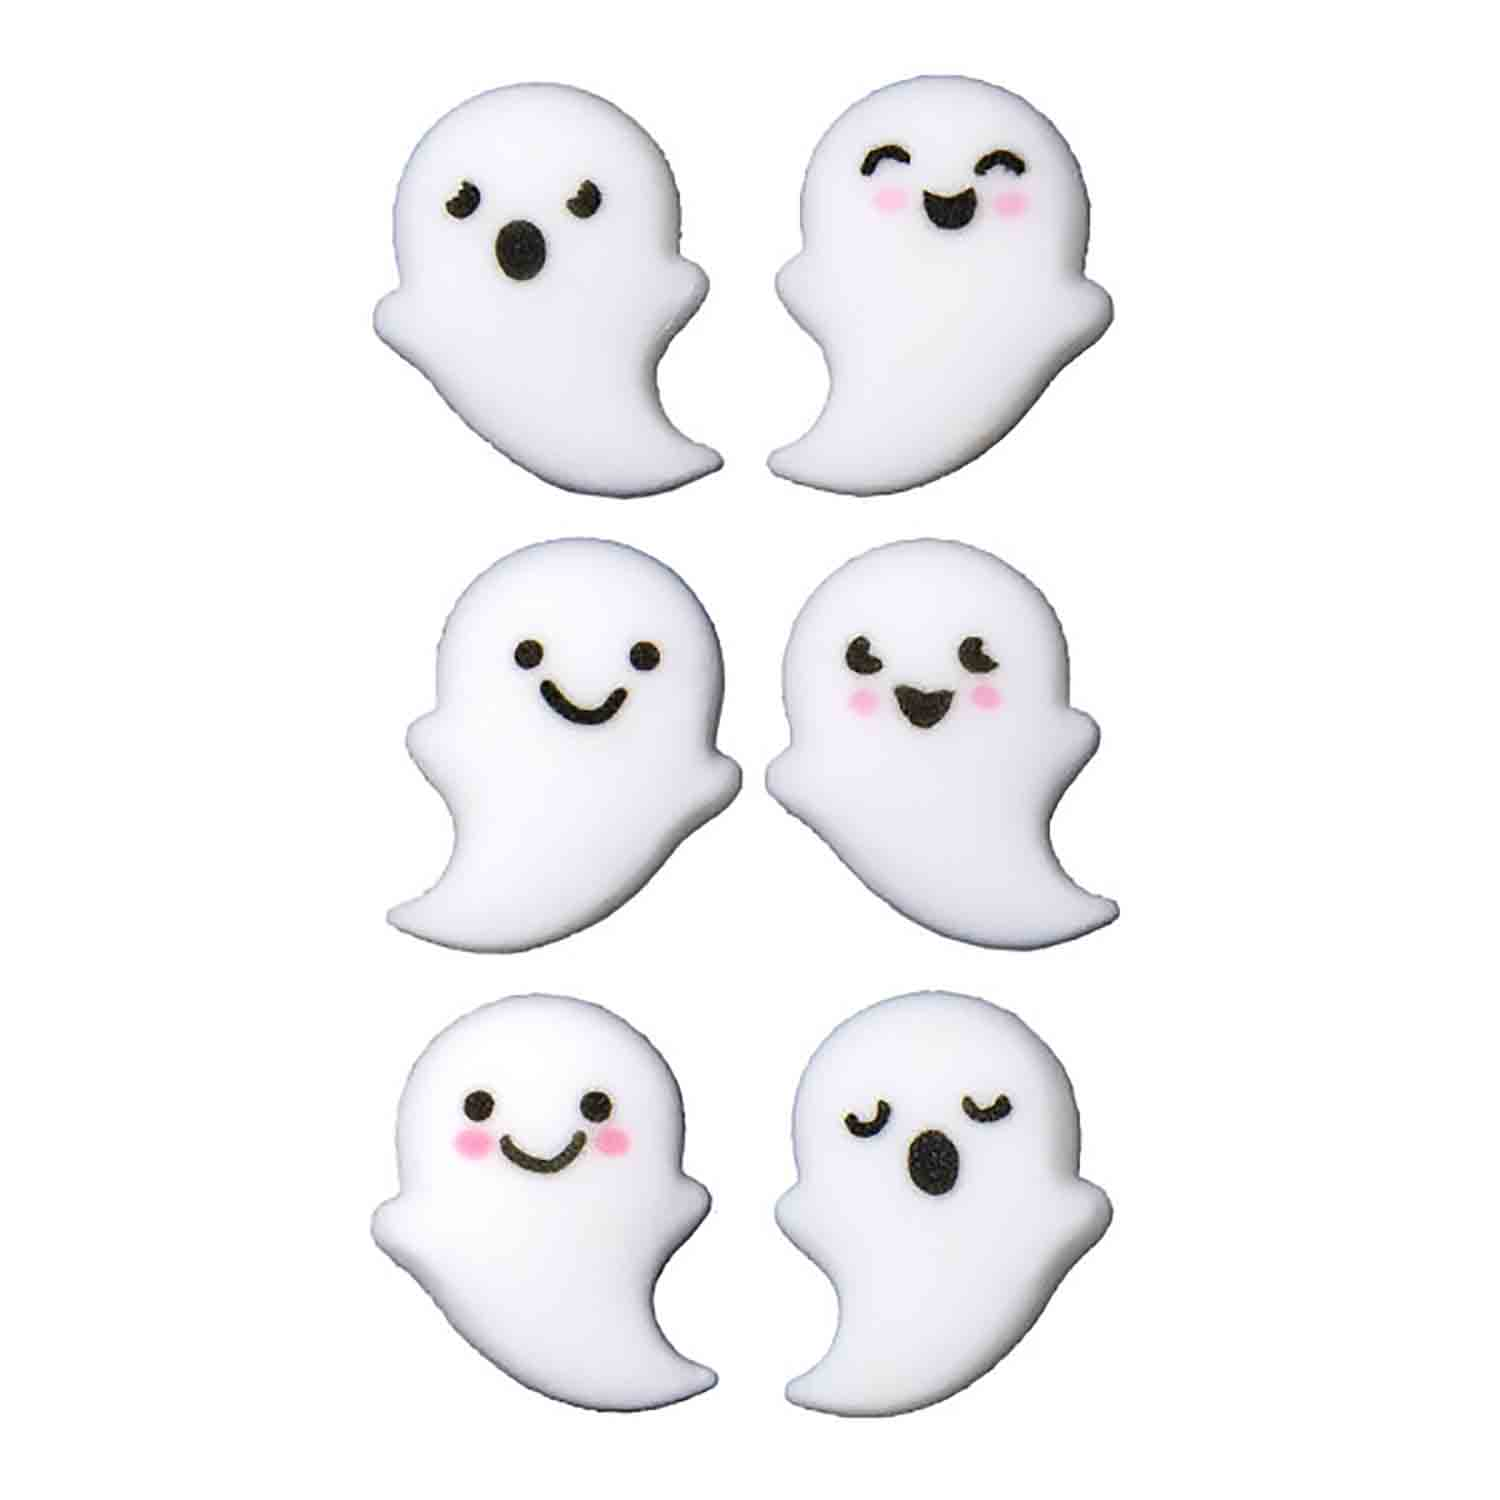 Dec-Ons® Molded Sugar - Ghost Buddies Assortment